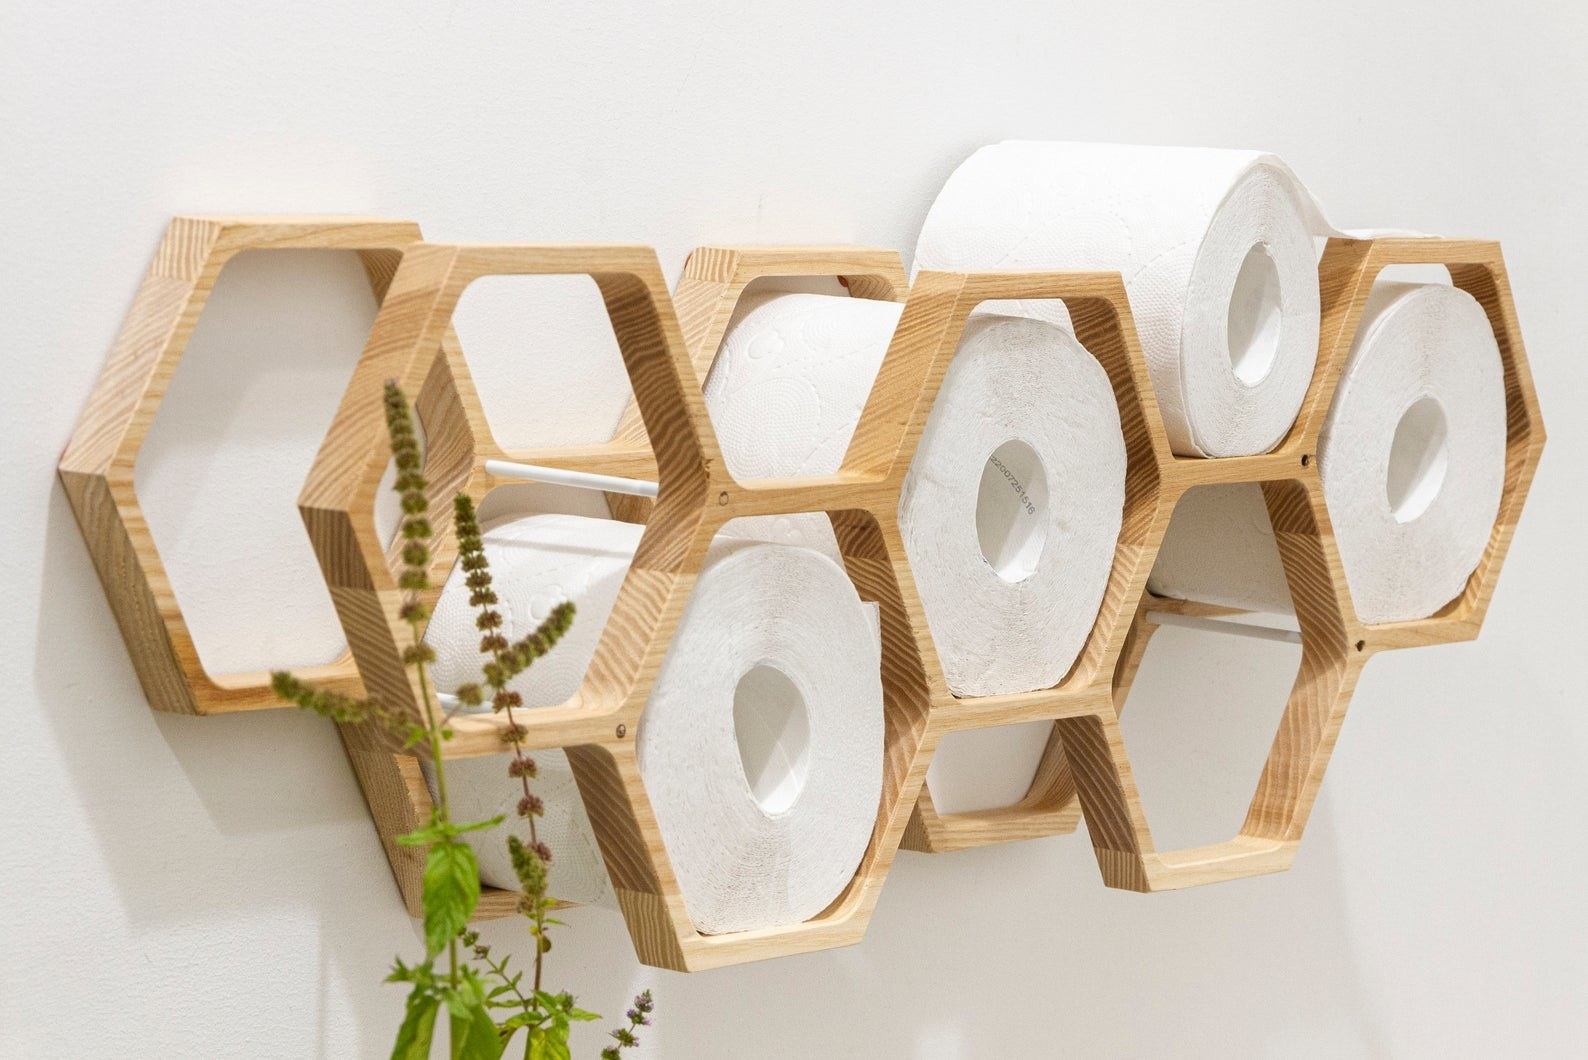 honeycomb-shaped organizer packed with toilet paper